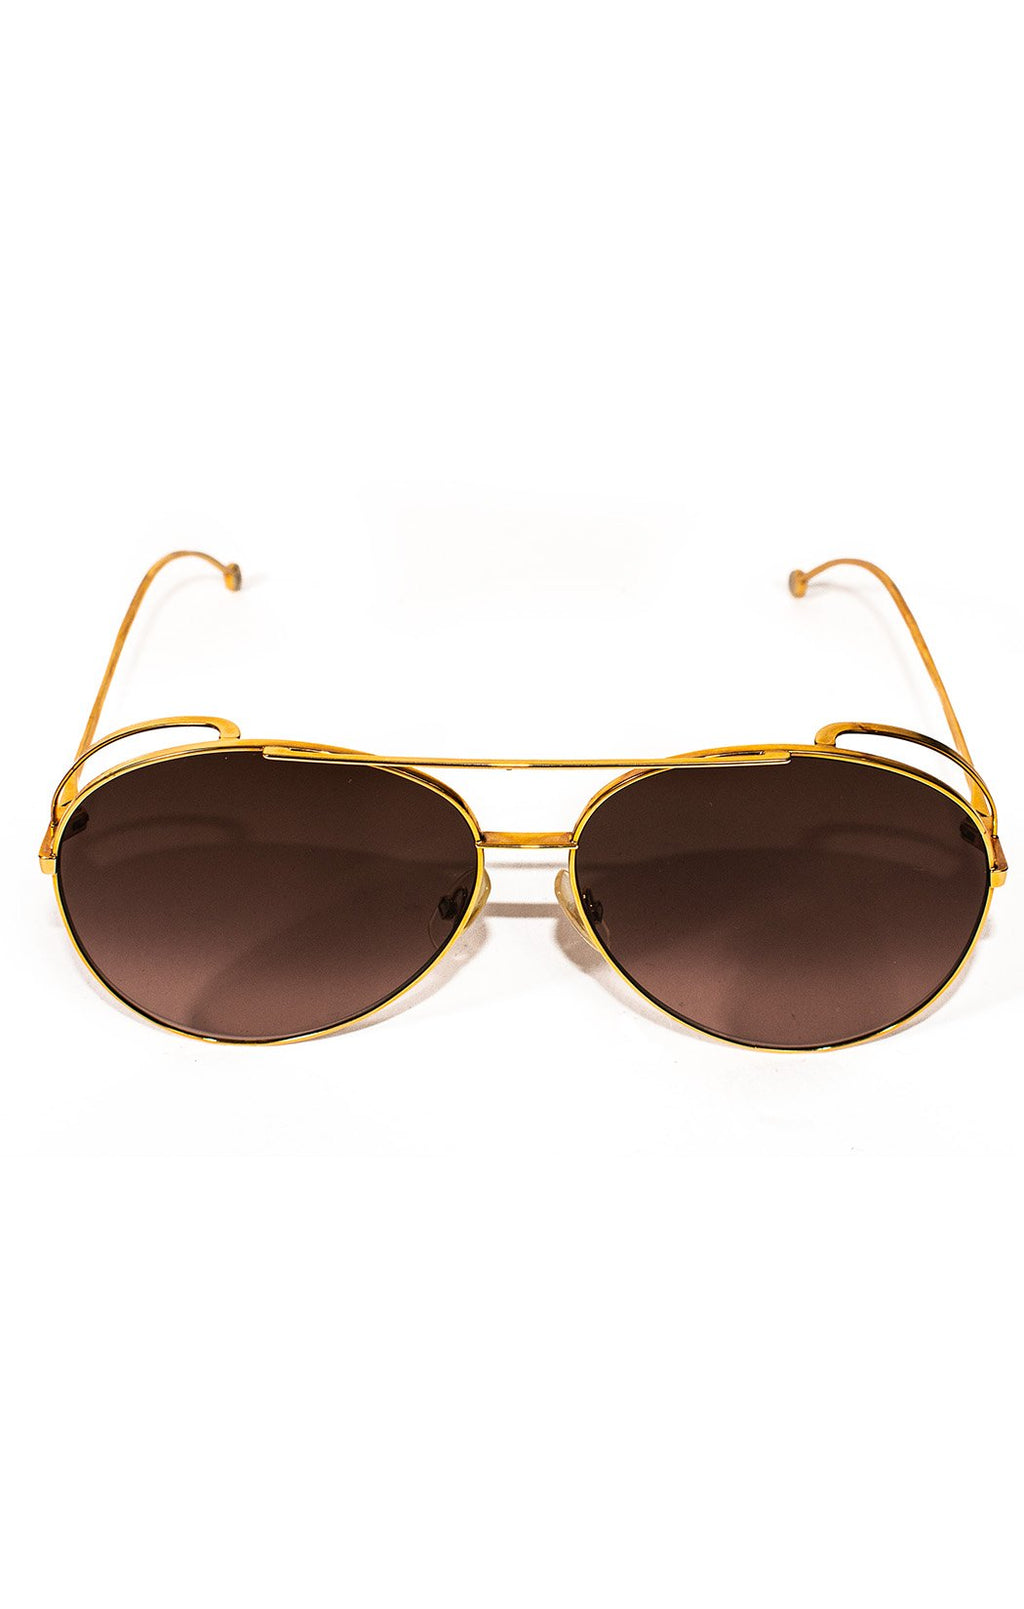 "Front view of FENDI  Sunglasses Size: H 2.5"", W 5.5"""